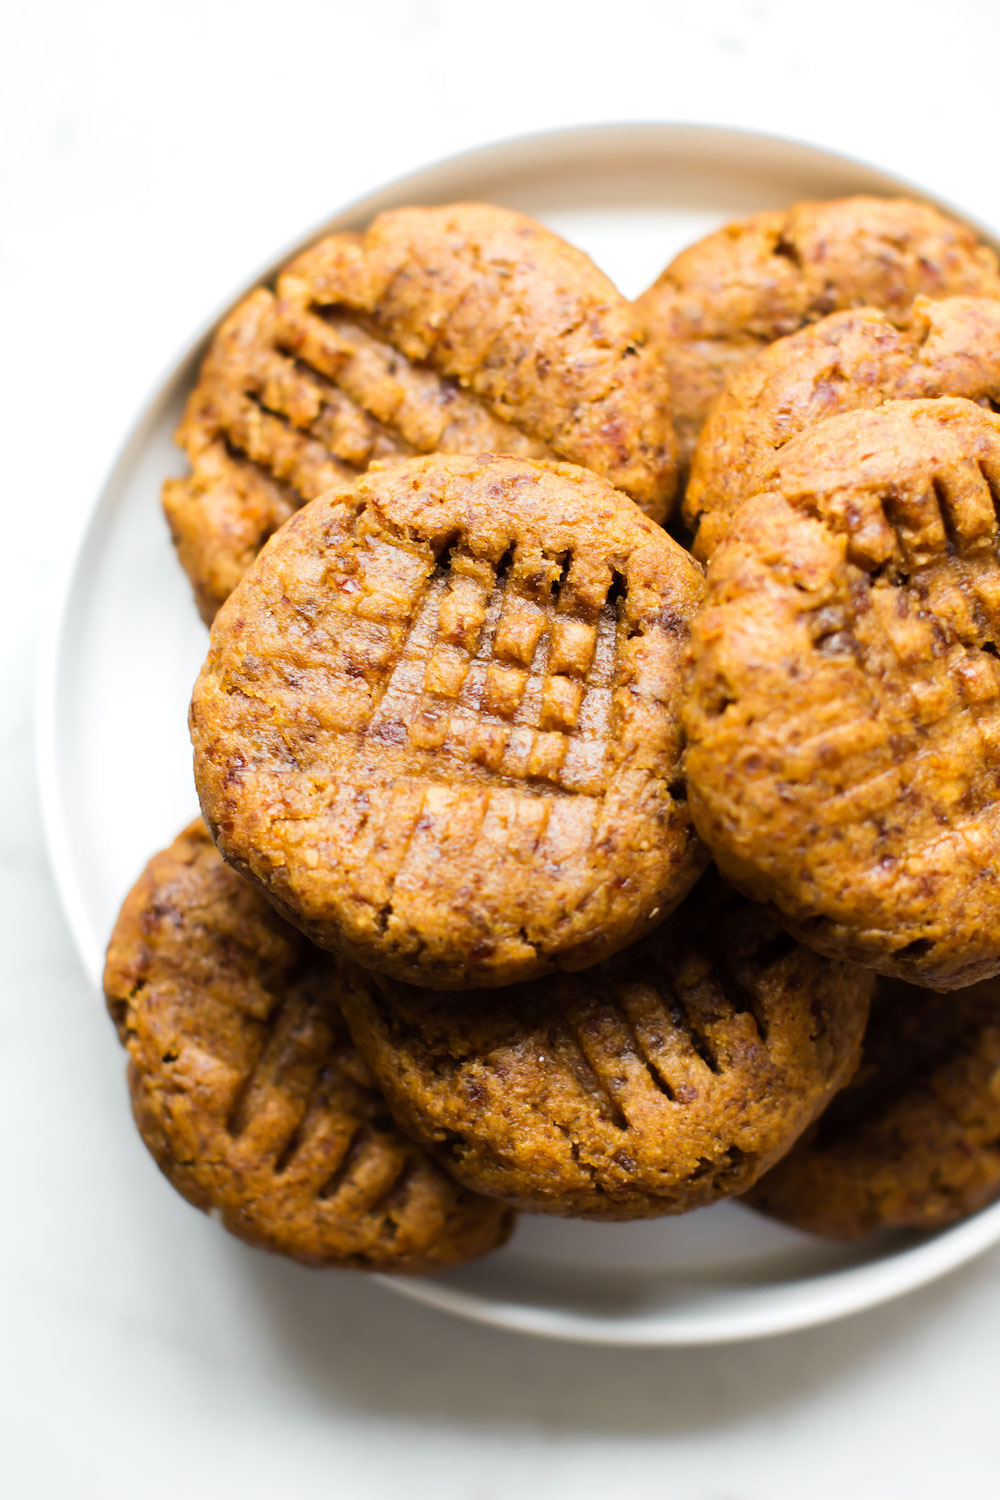 Vegan Grain-Free Peanut Butter Cookies